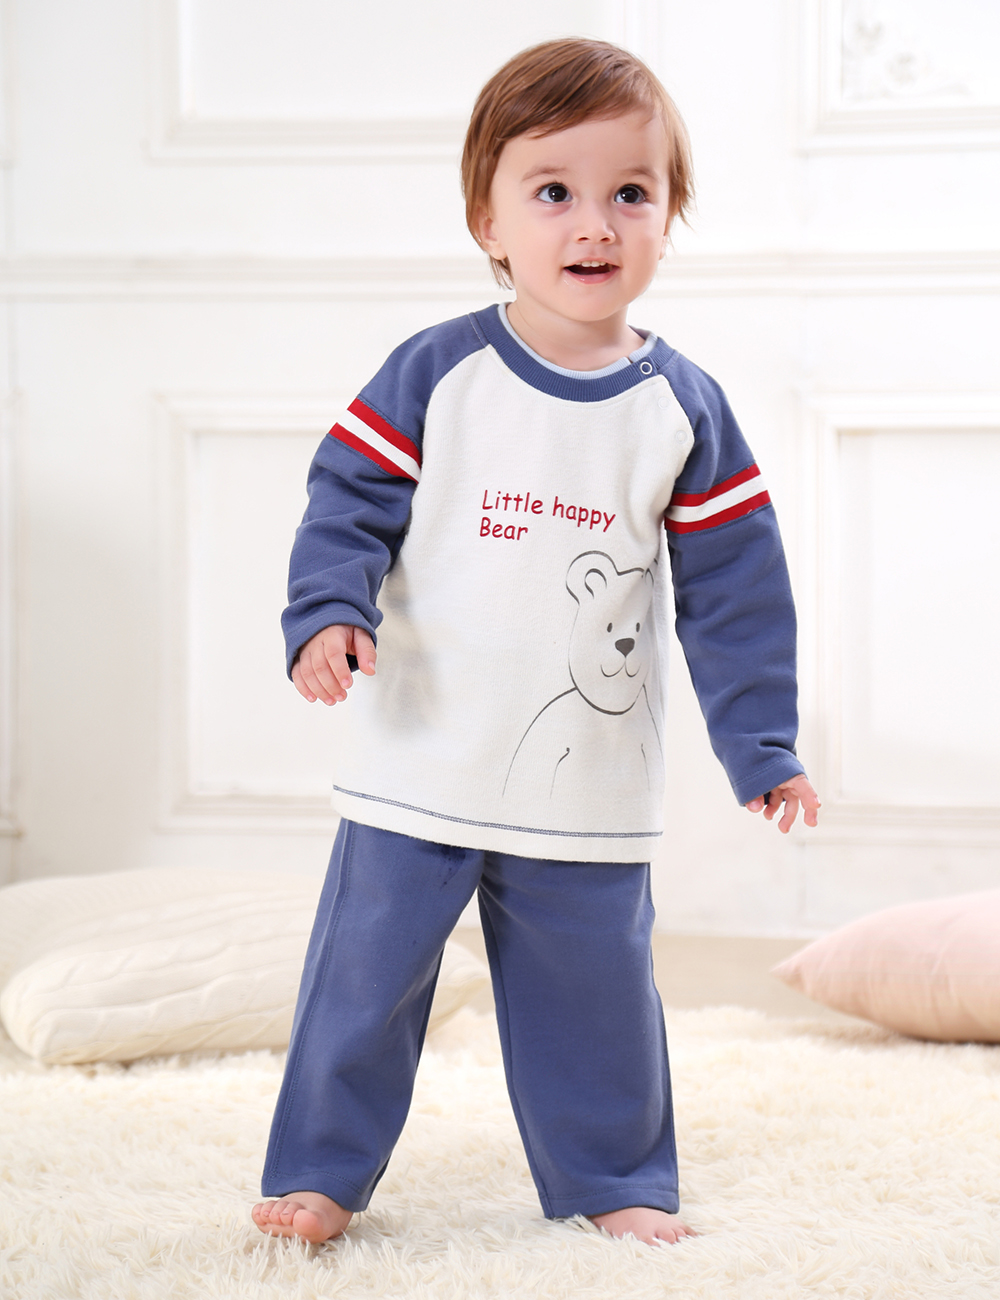 Baby Boys Clothing Set Baby Boy Clothes Outerwear Interloop Baby Fleece Wear Fashion Autumn Winter 100% Cotton Knitted ...